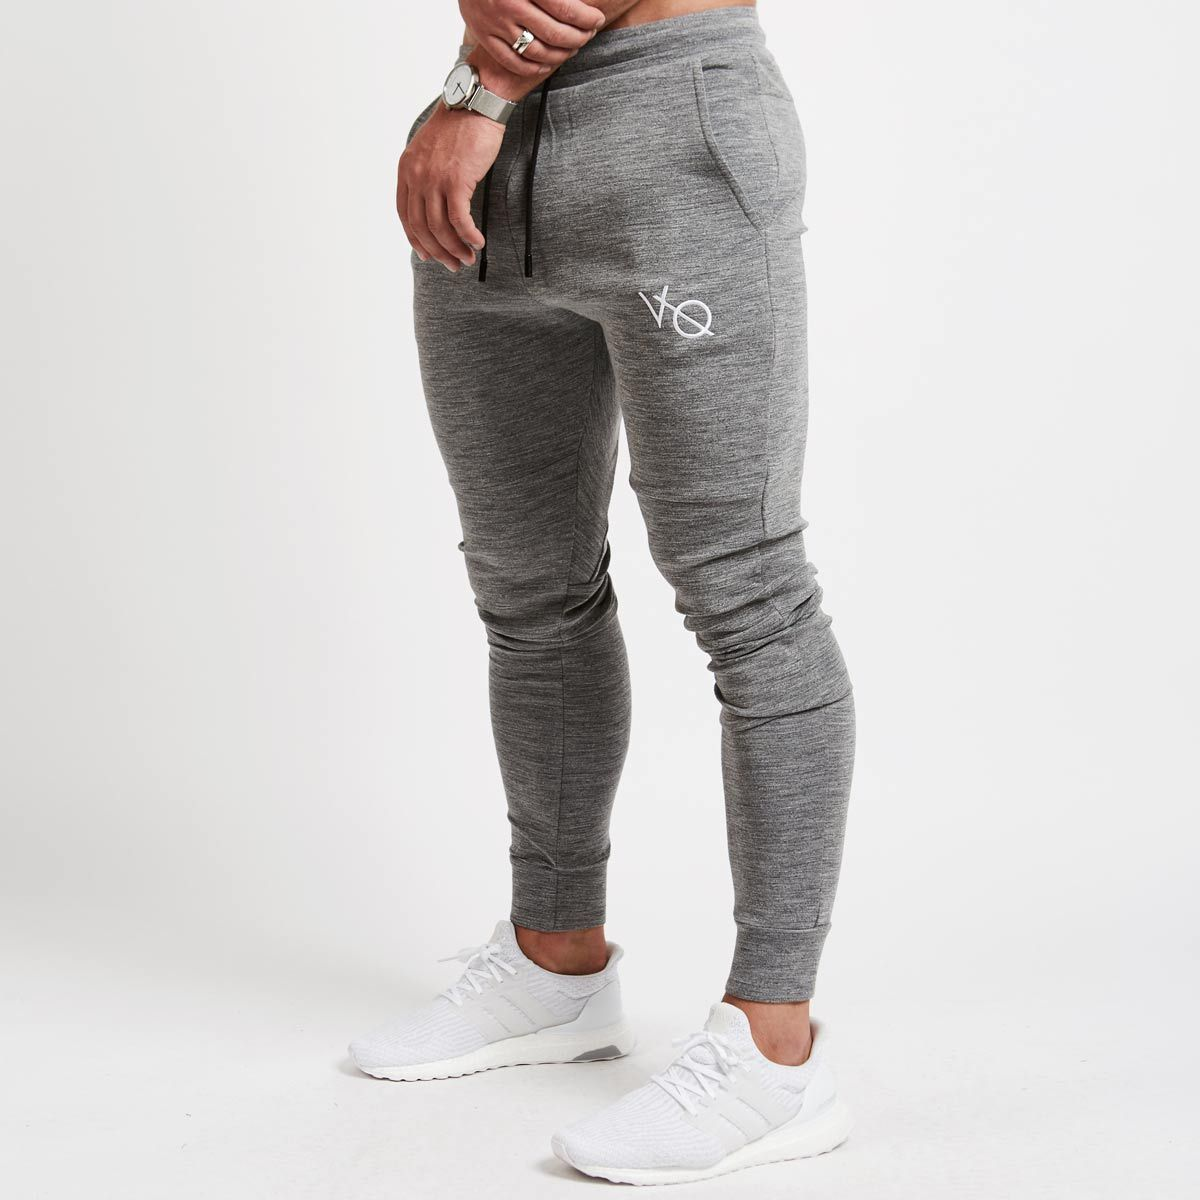 2017 new muscle brothers fitness exercise men to slim casual sweatpants